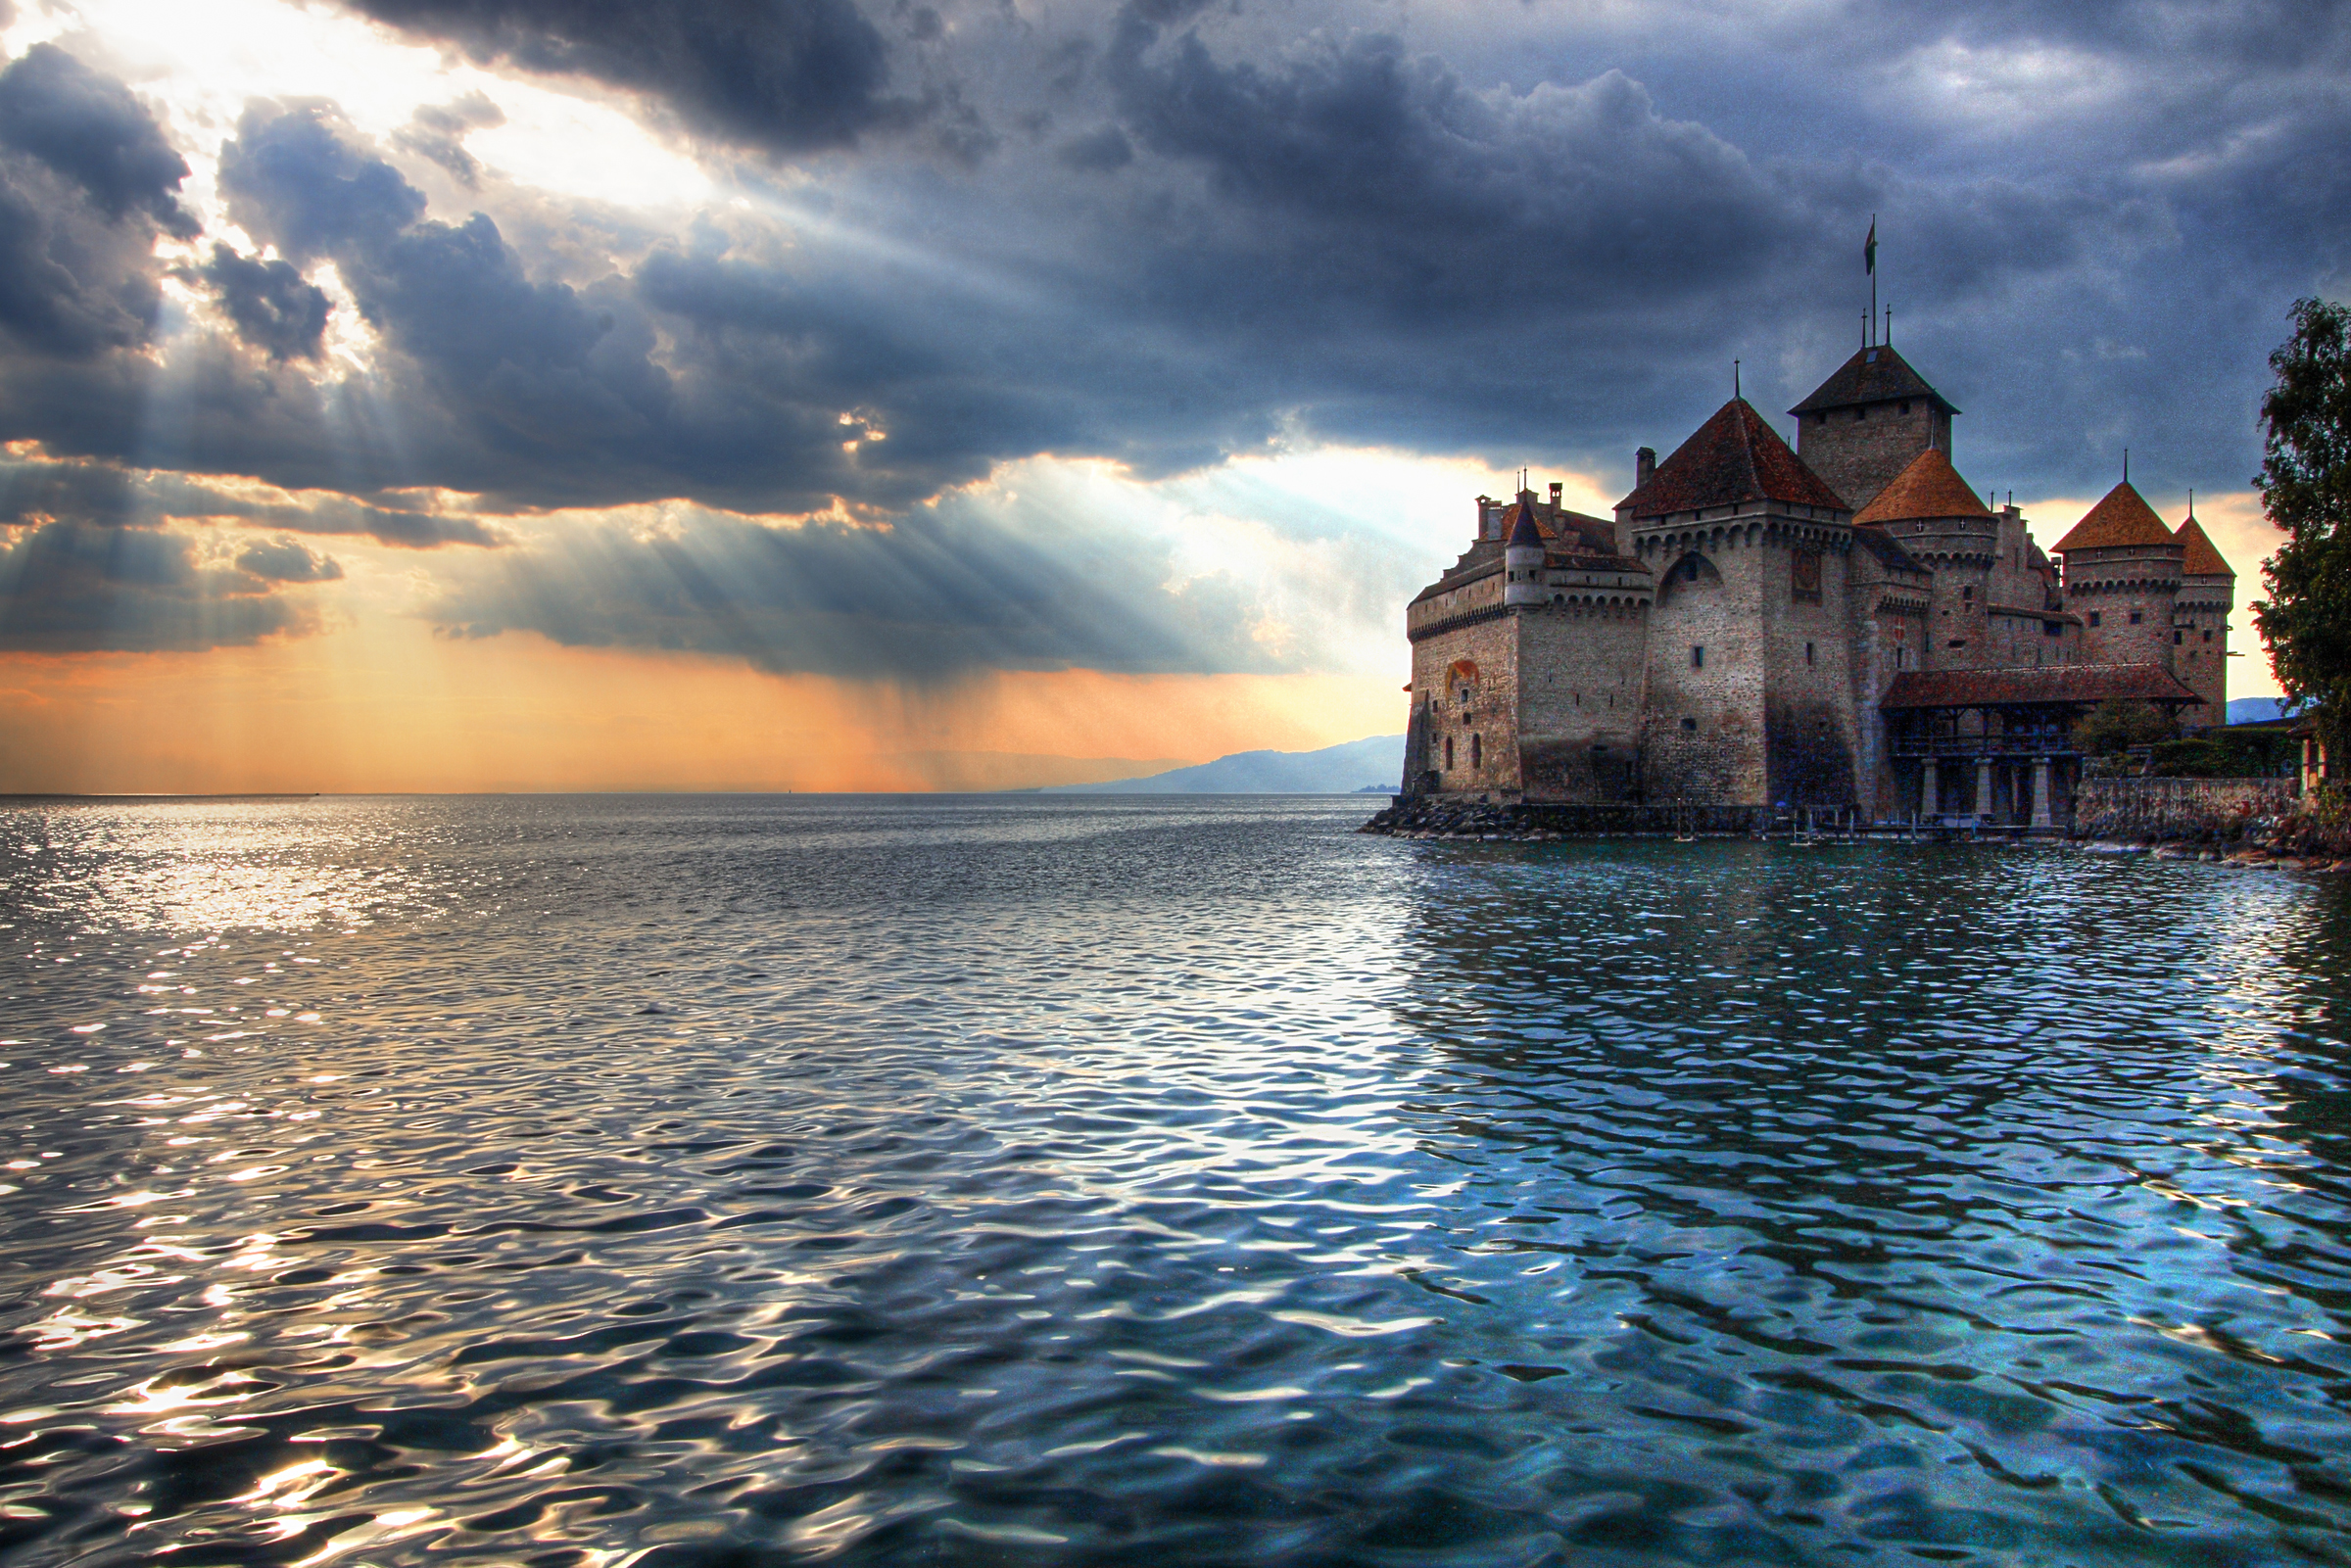 Castillo de Chateau De Chillon